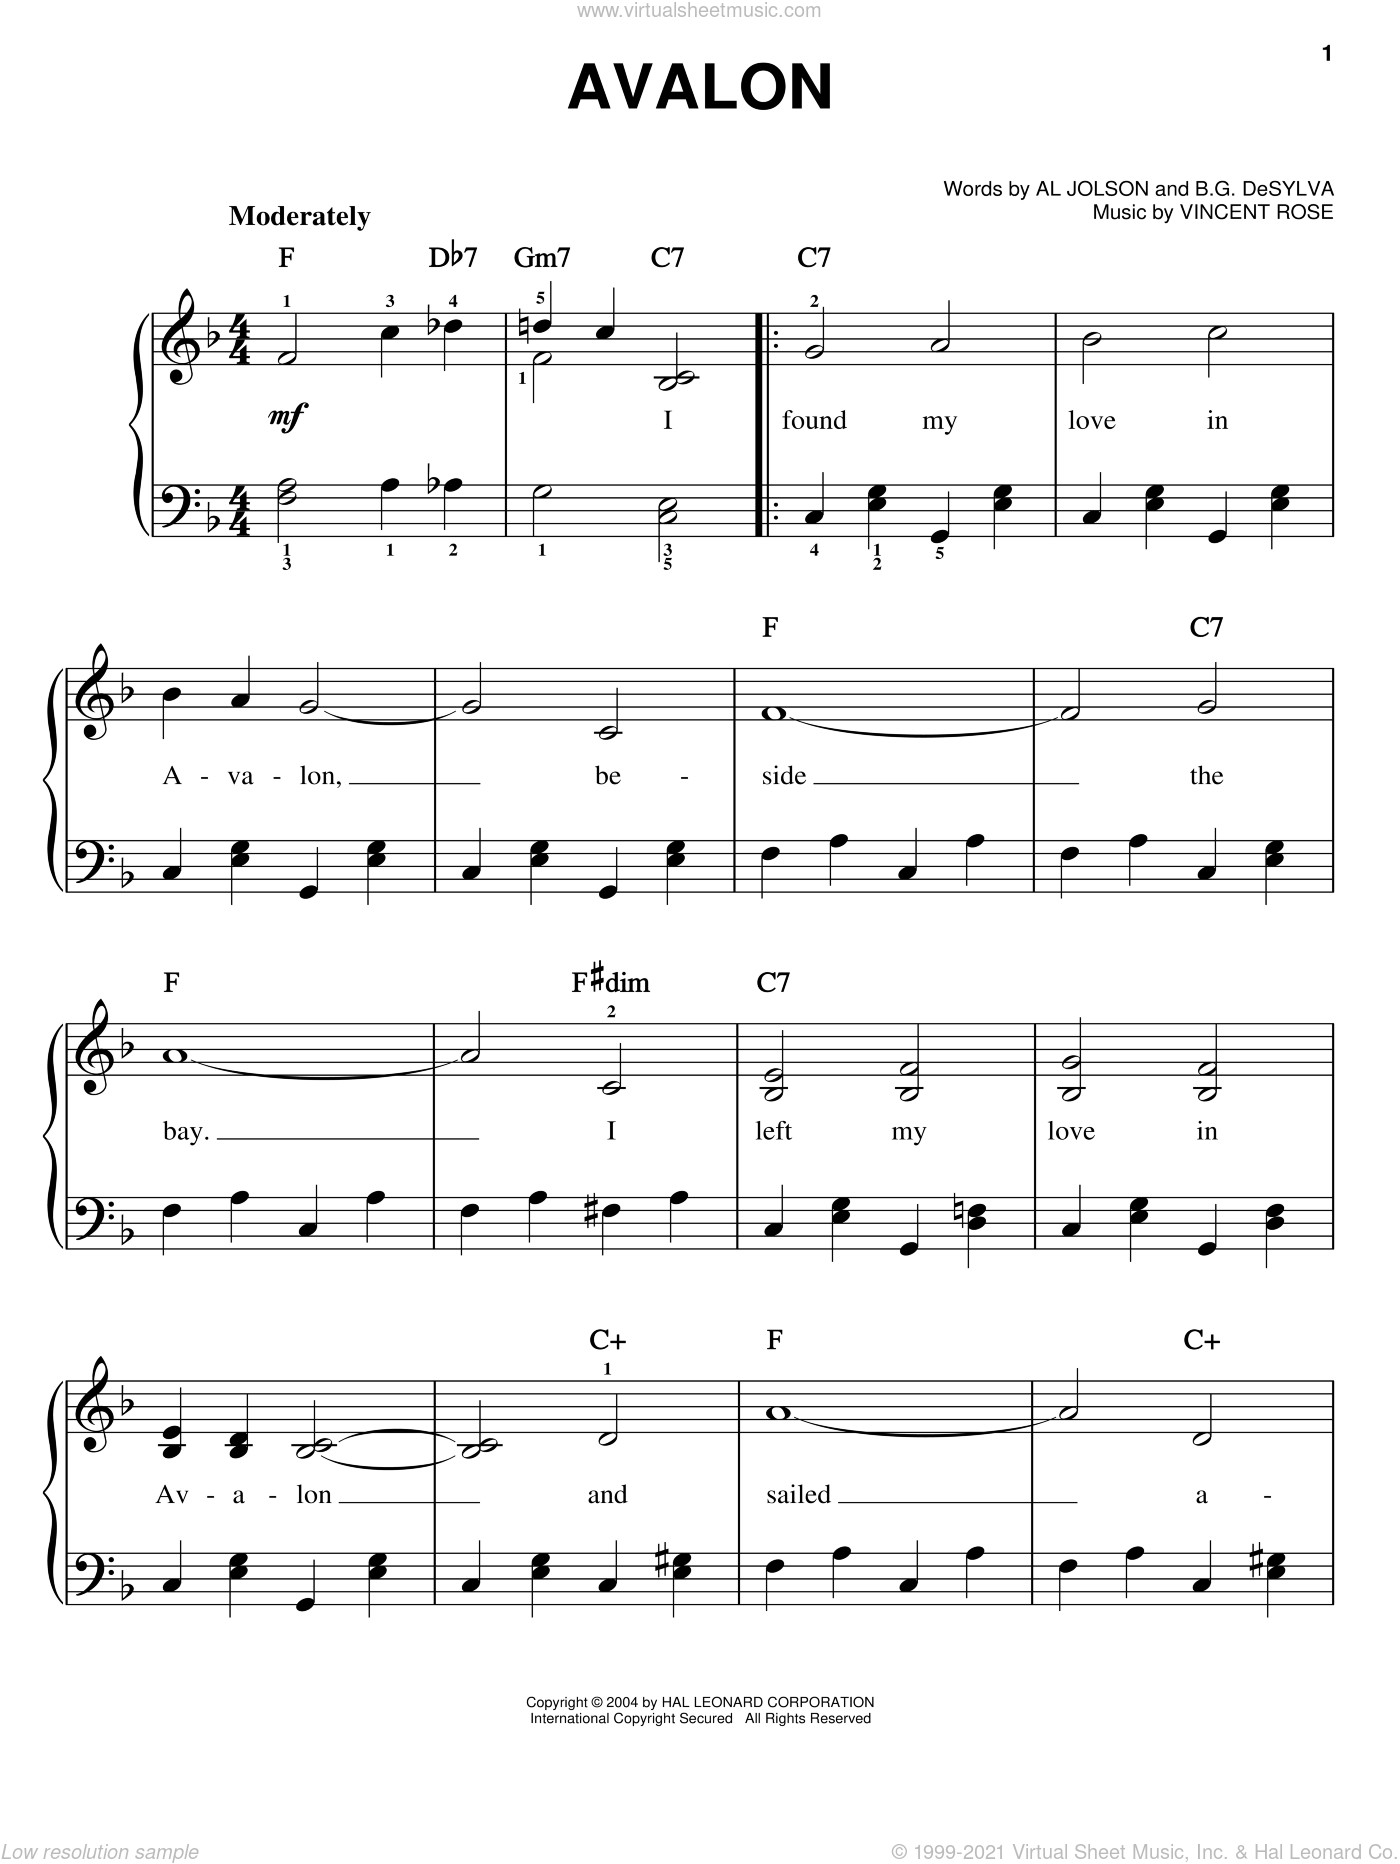 Avalon sheet music for piano solo (chords) by Vincent Rose